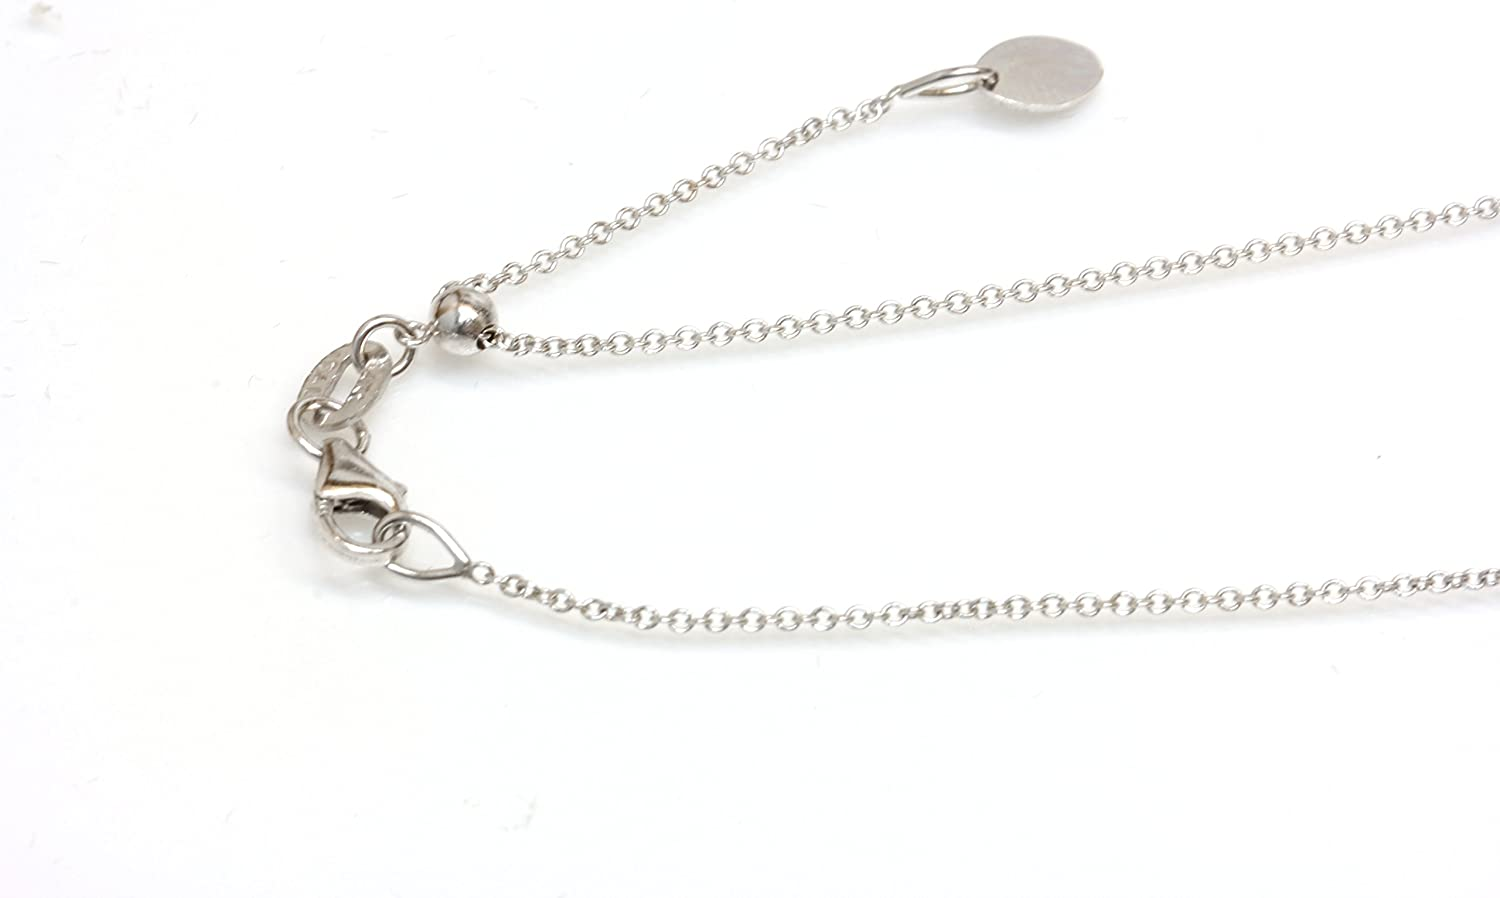 Seven Seas Pearls 14kt Solid White Gold Adjustable Chain 14